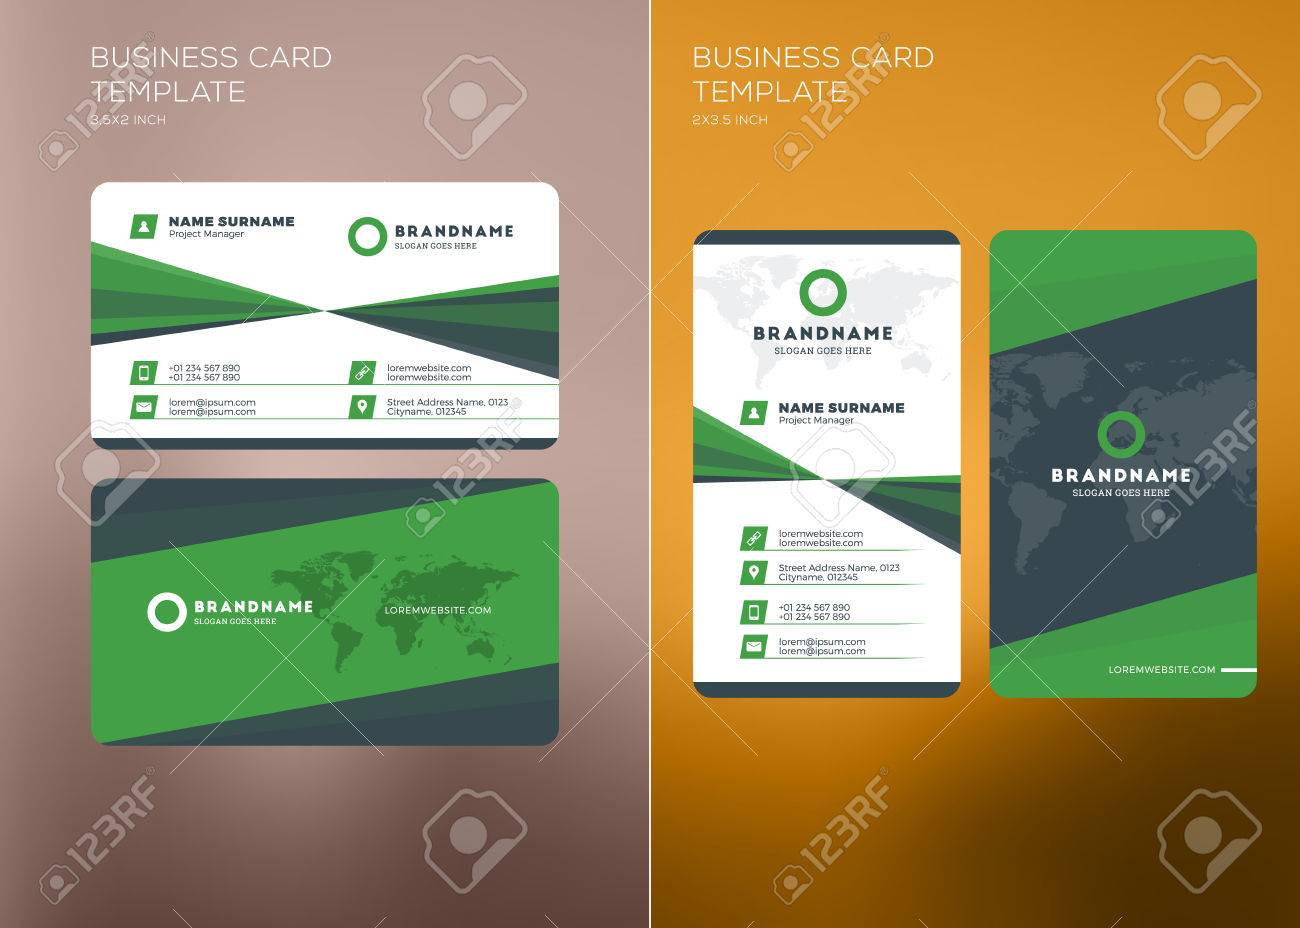 Corporate business card print template personal visiting card corporate business card print template personal visiting card with company logo vertical and horizontal wajeb Images